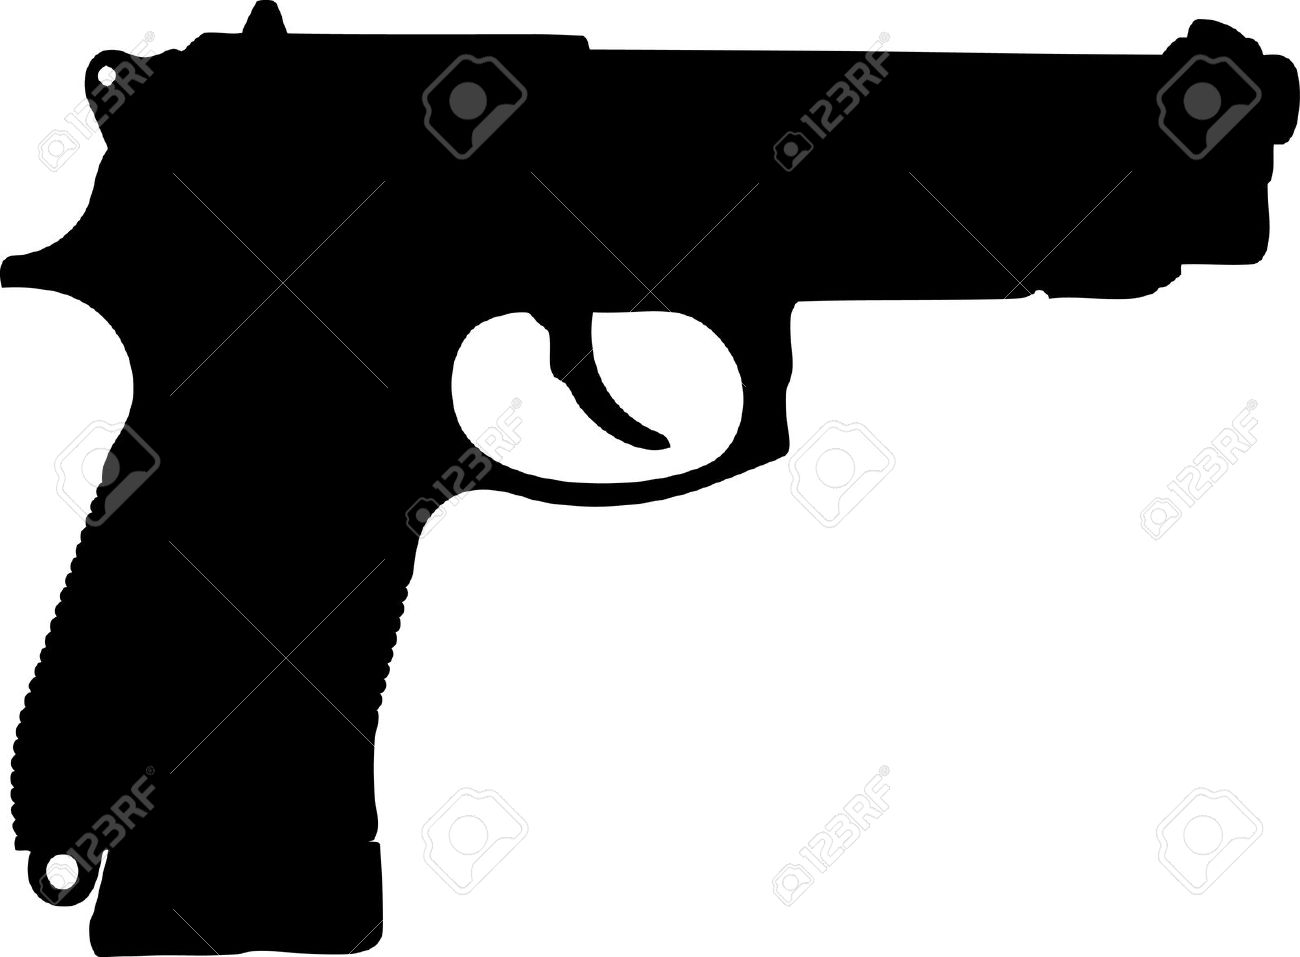 Silhouette Of Pistol On A White Background Royalty Free Cliparts.